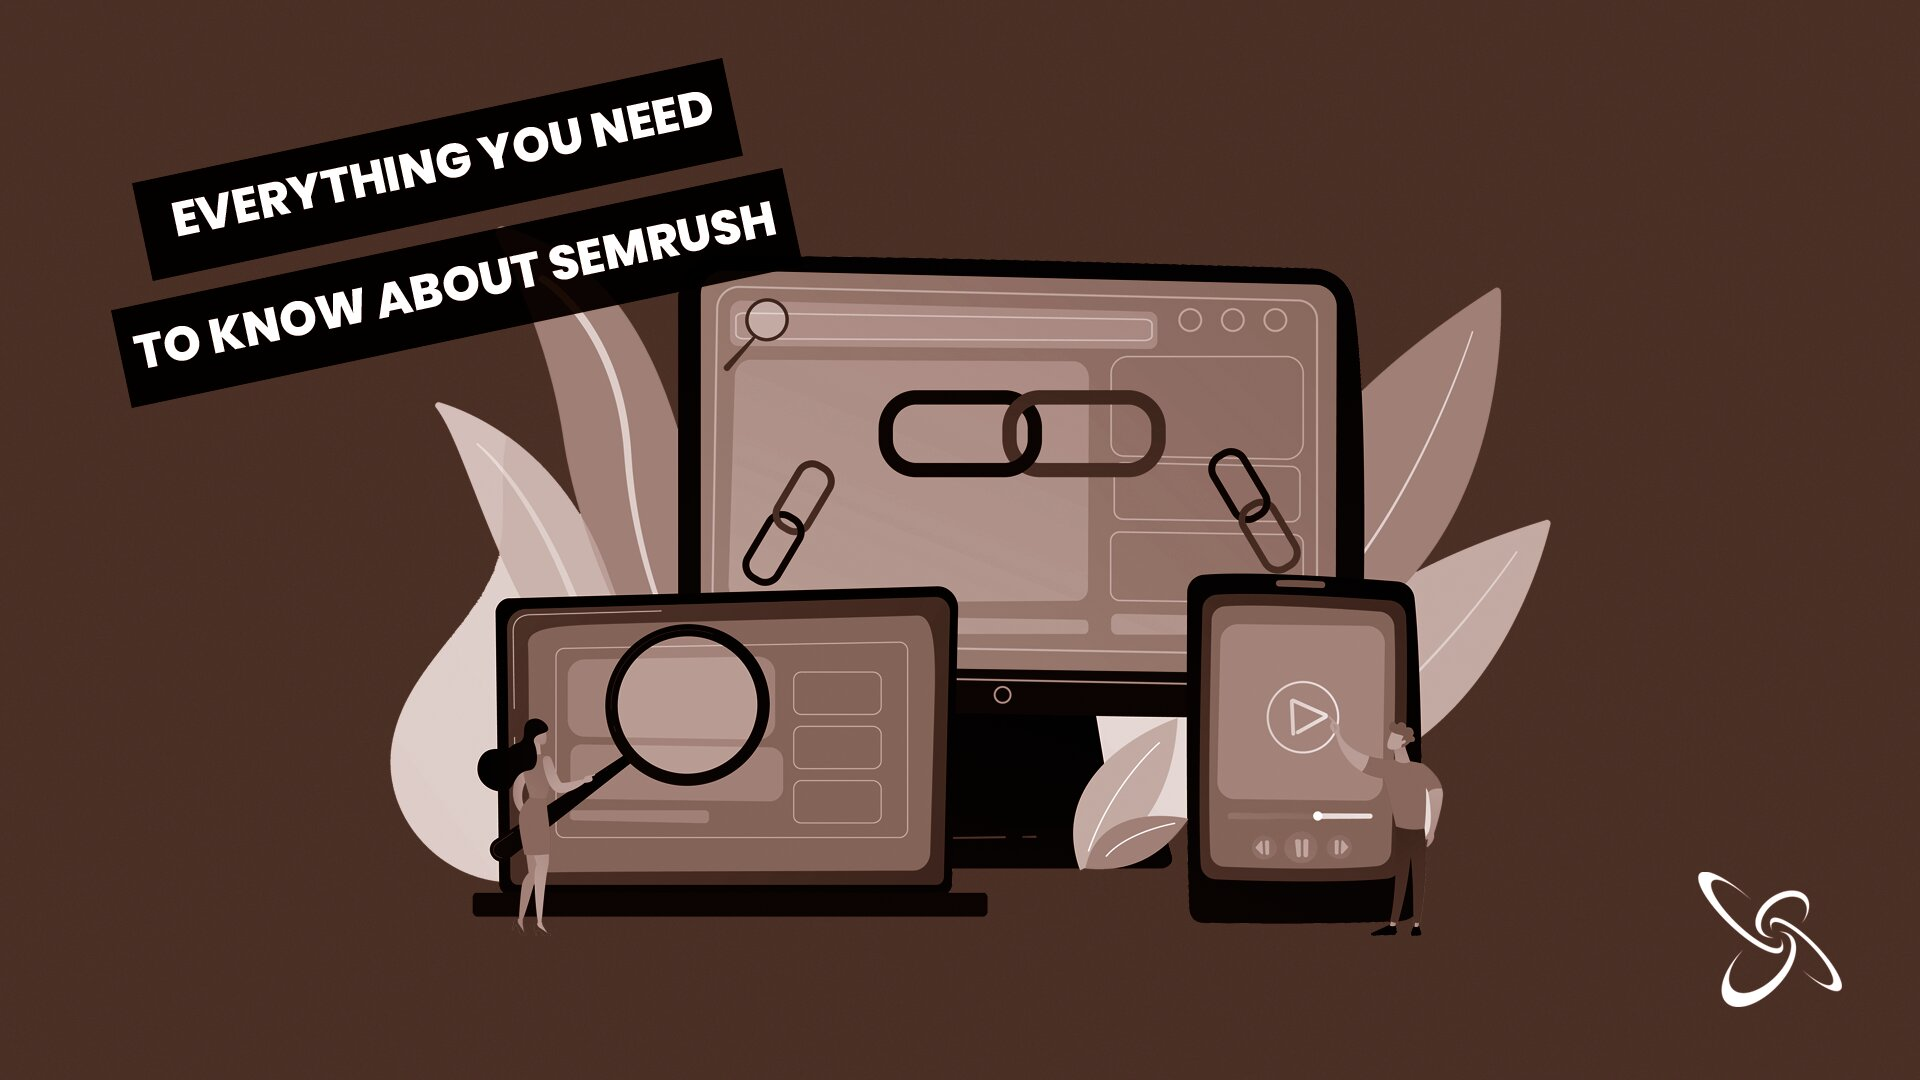 everything you need to know about semrush